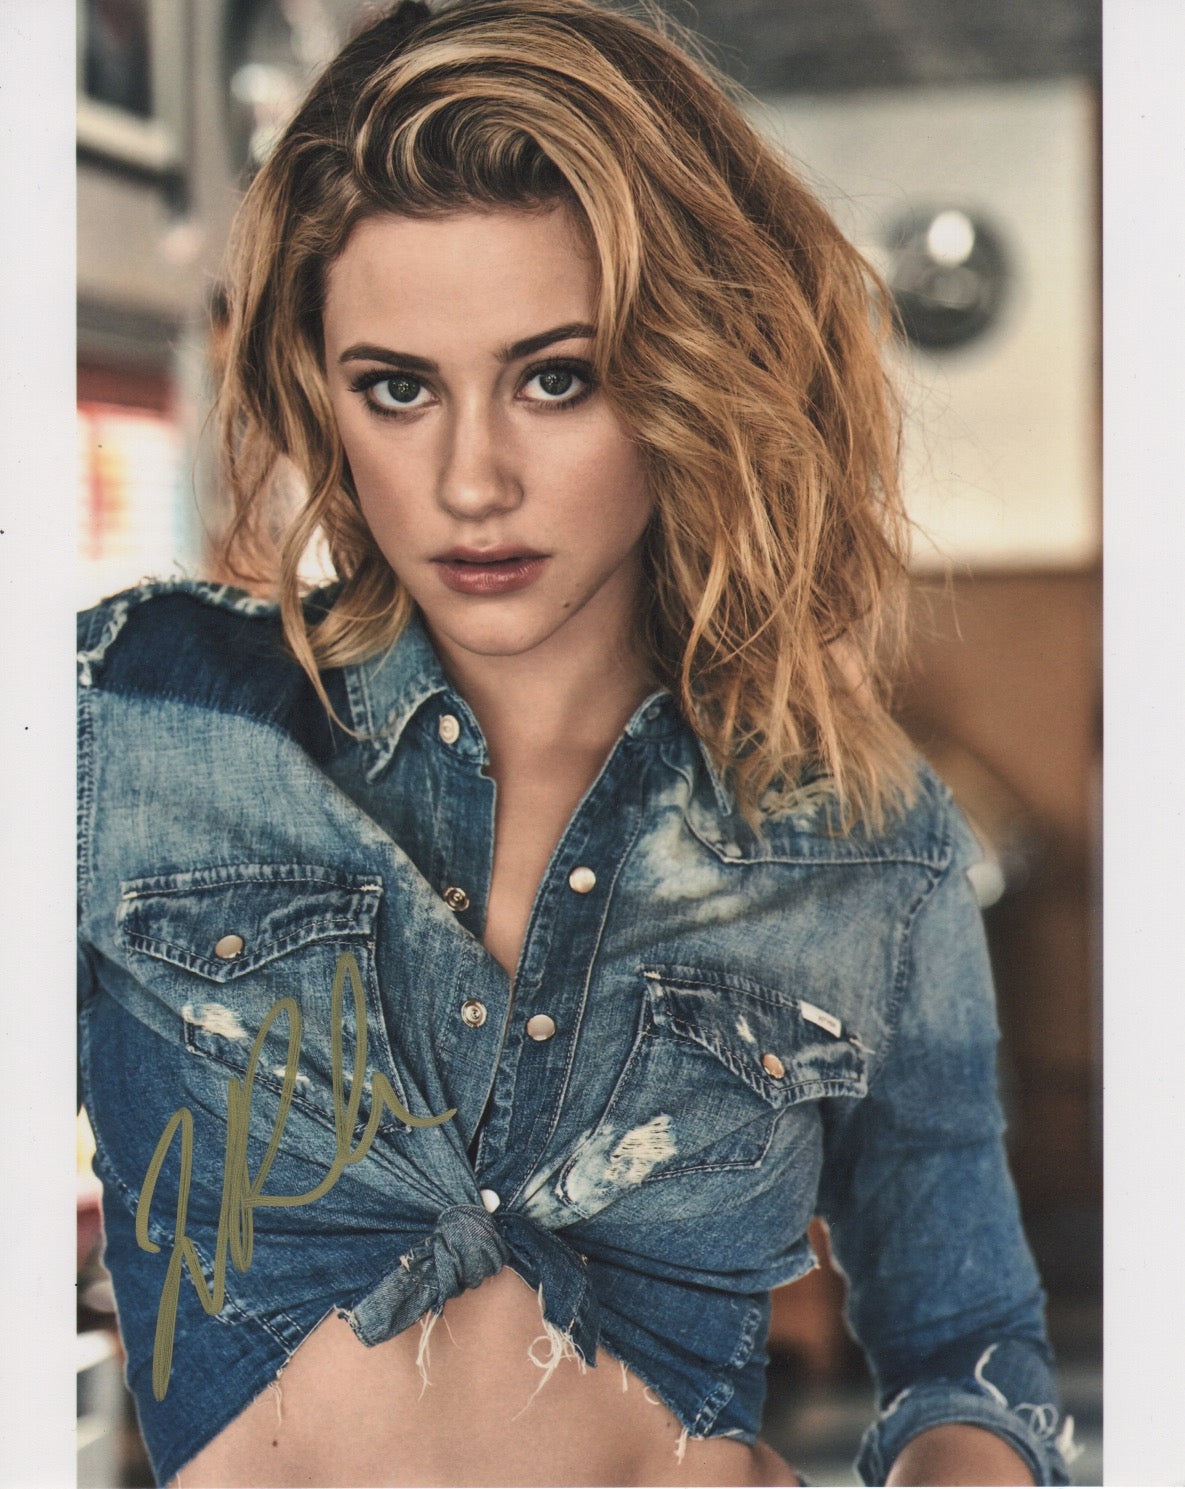 Lili Reinhart Riverdale Signed Autograph 8x10 Photo #3